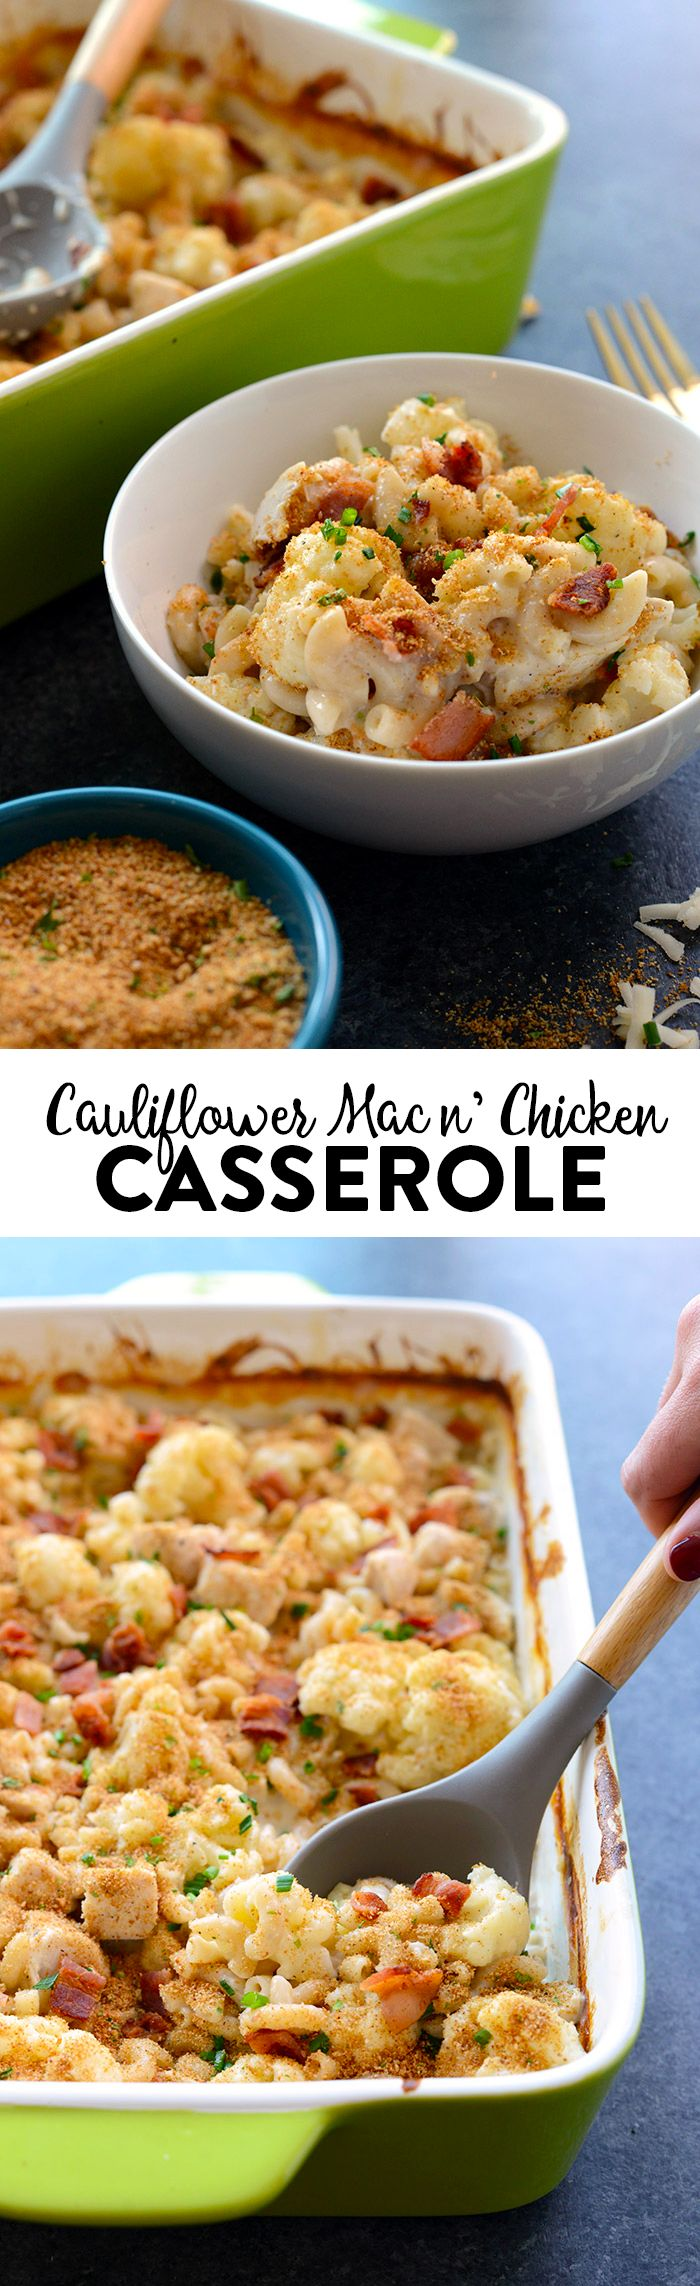 This recipe makes healthy comfort food a real thing! Make this Cauliflower Mac n' Chicken Casserole with ancient grain pasta for the most epic meal the entire family will love! | @FitFoodieFinds